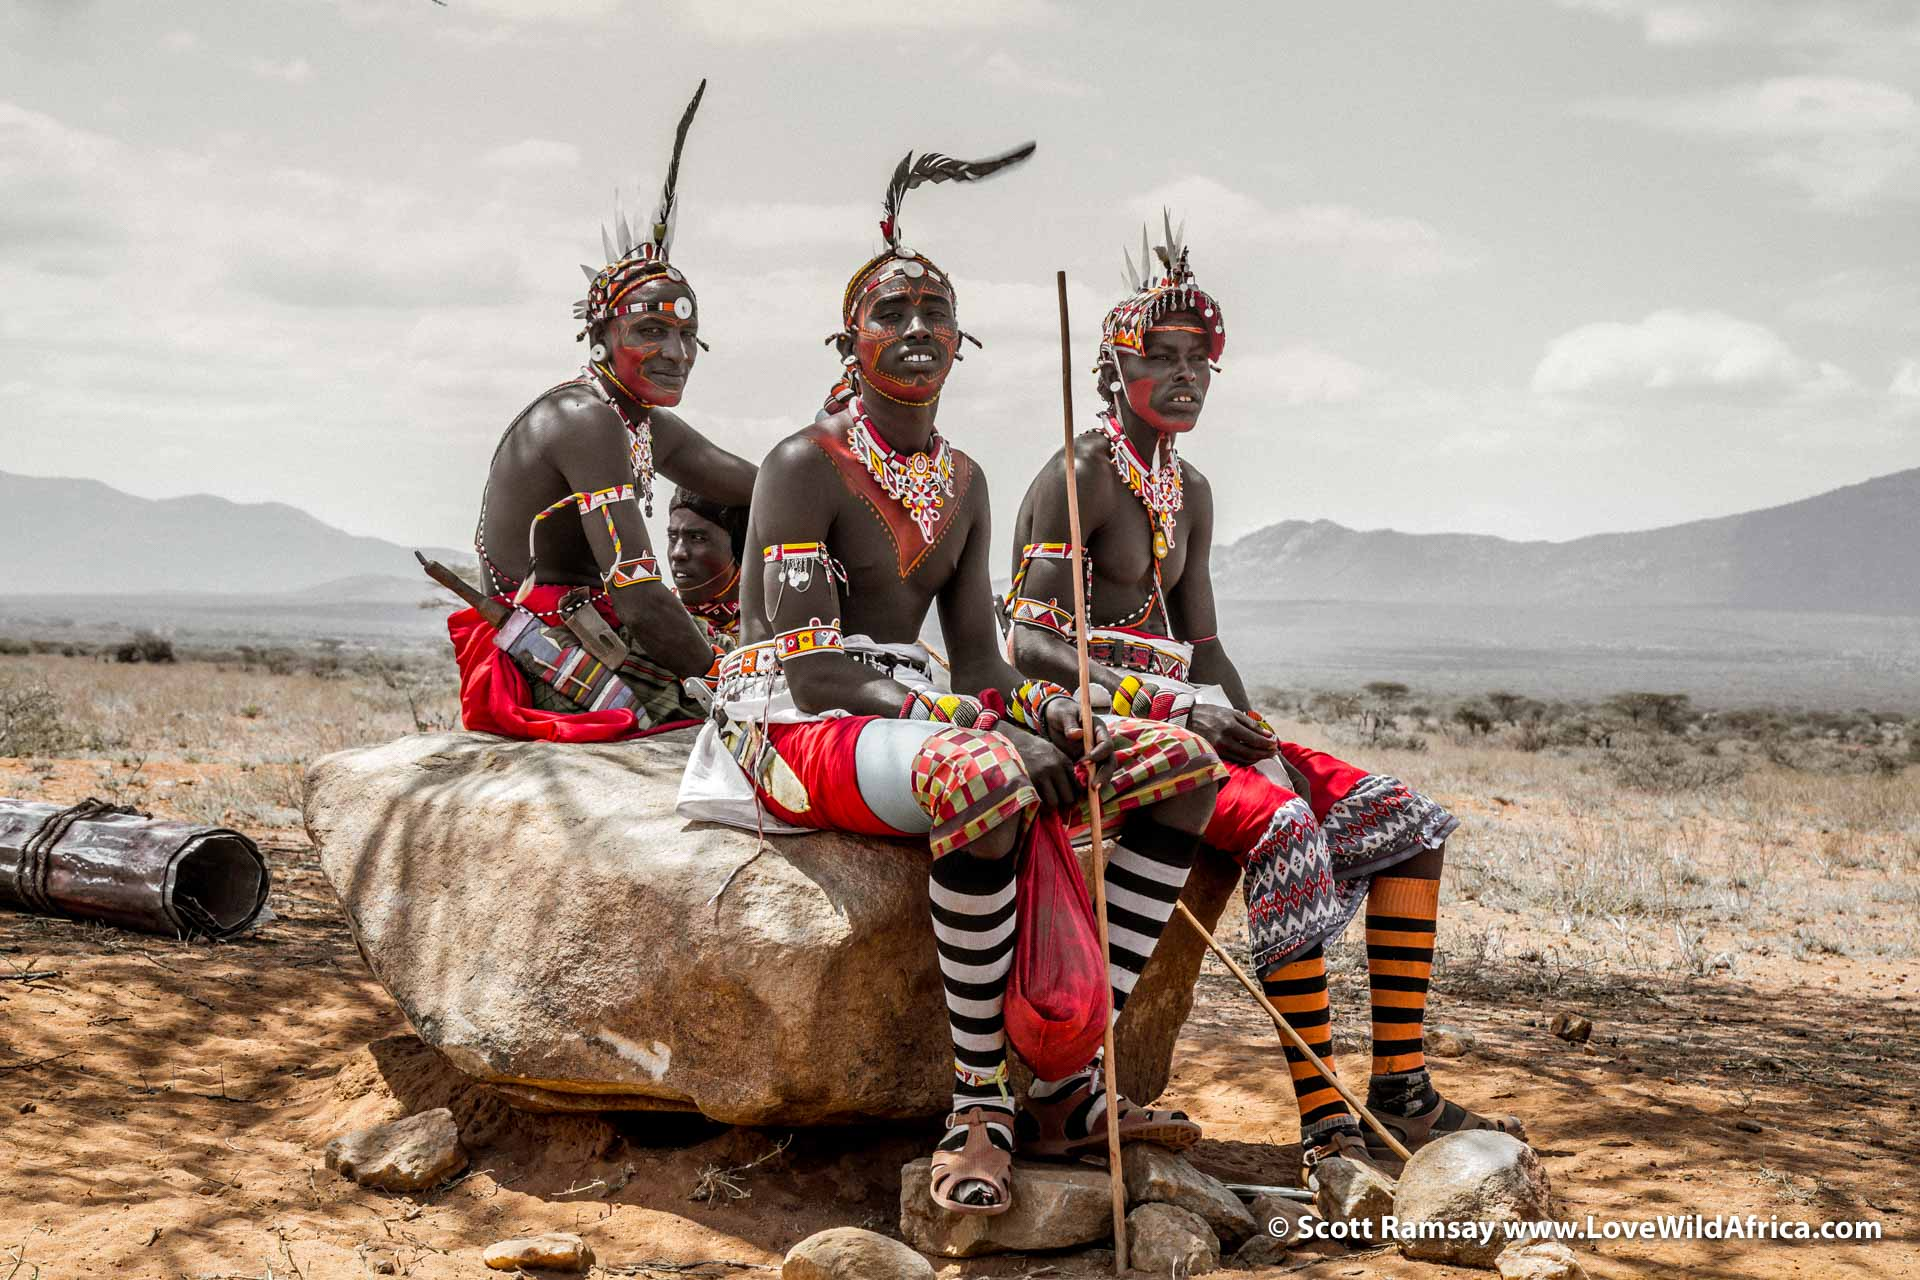 On our way into Samburuland near the Matthews mountain range, we came across this group of Samburu men, dressed up in ceremonial wedding attire. Mikey asked them if I could take a photo...and they seemed happy to do so.